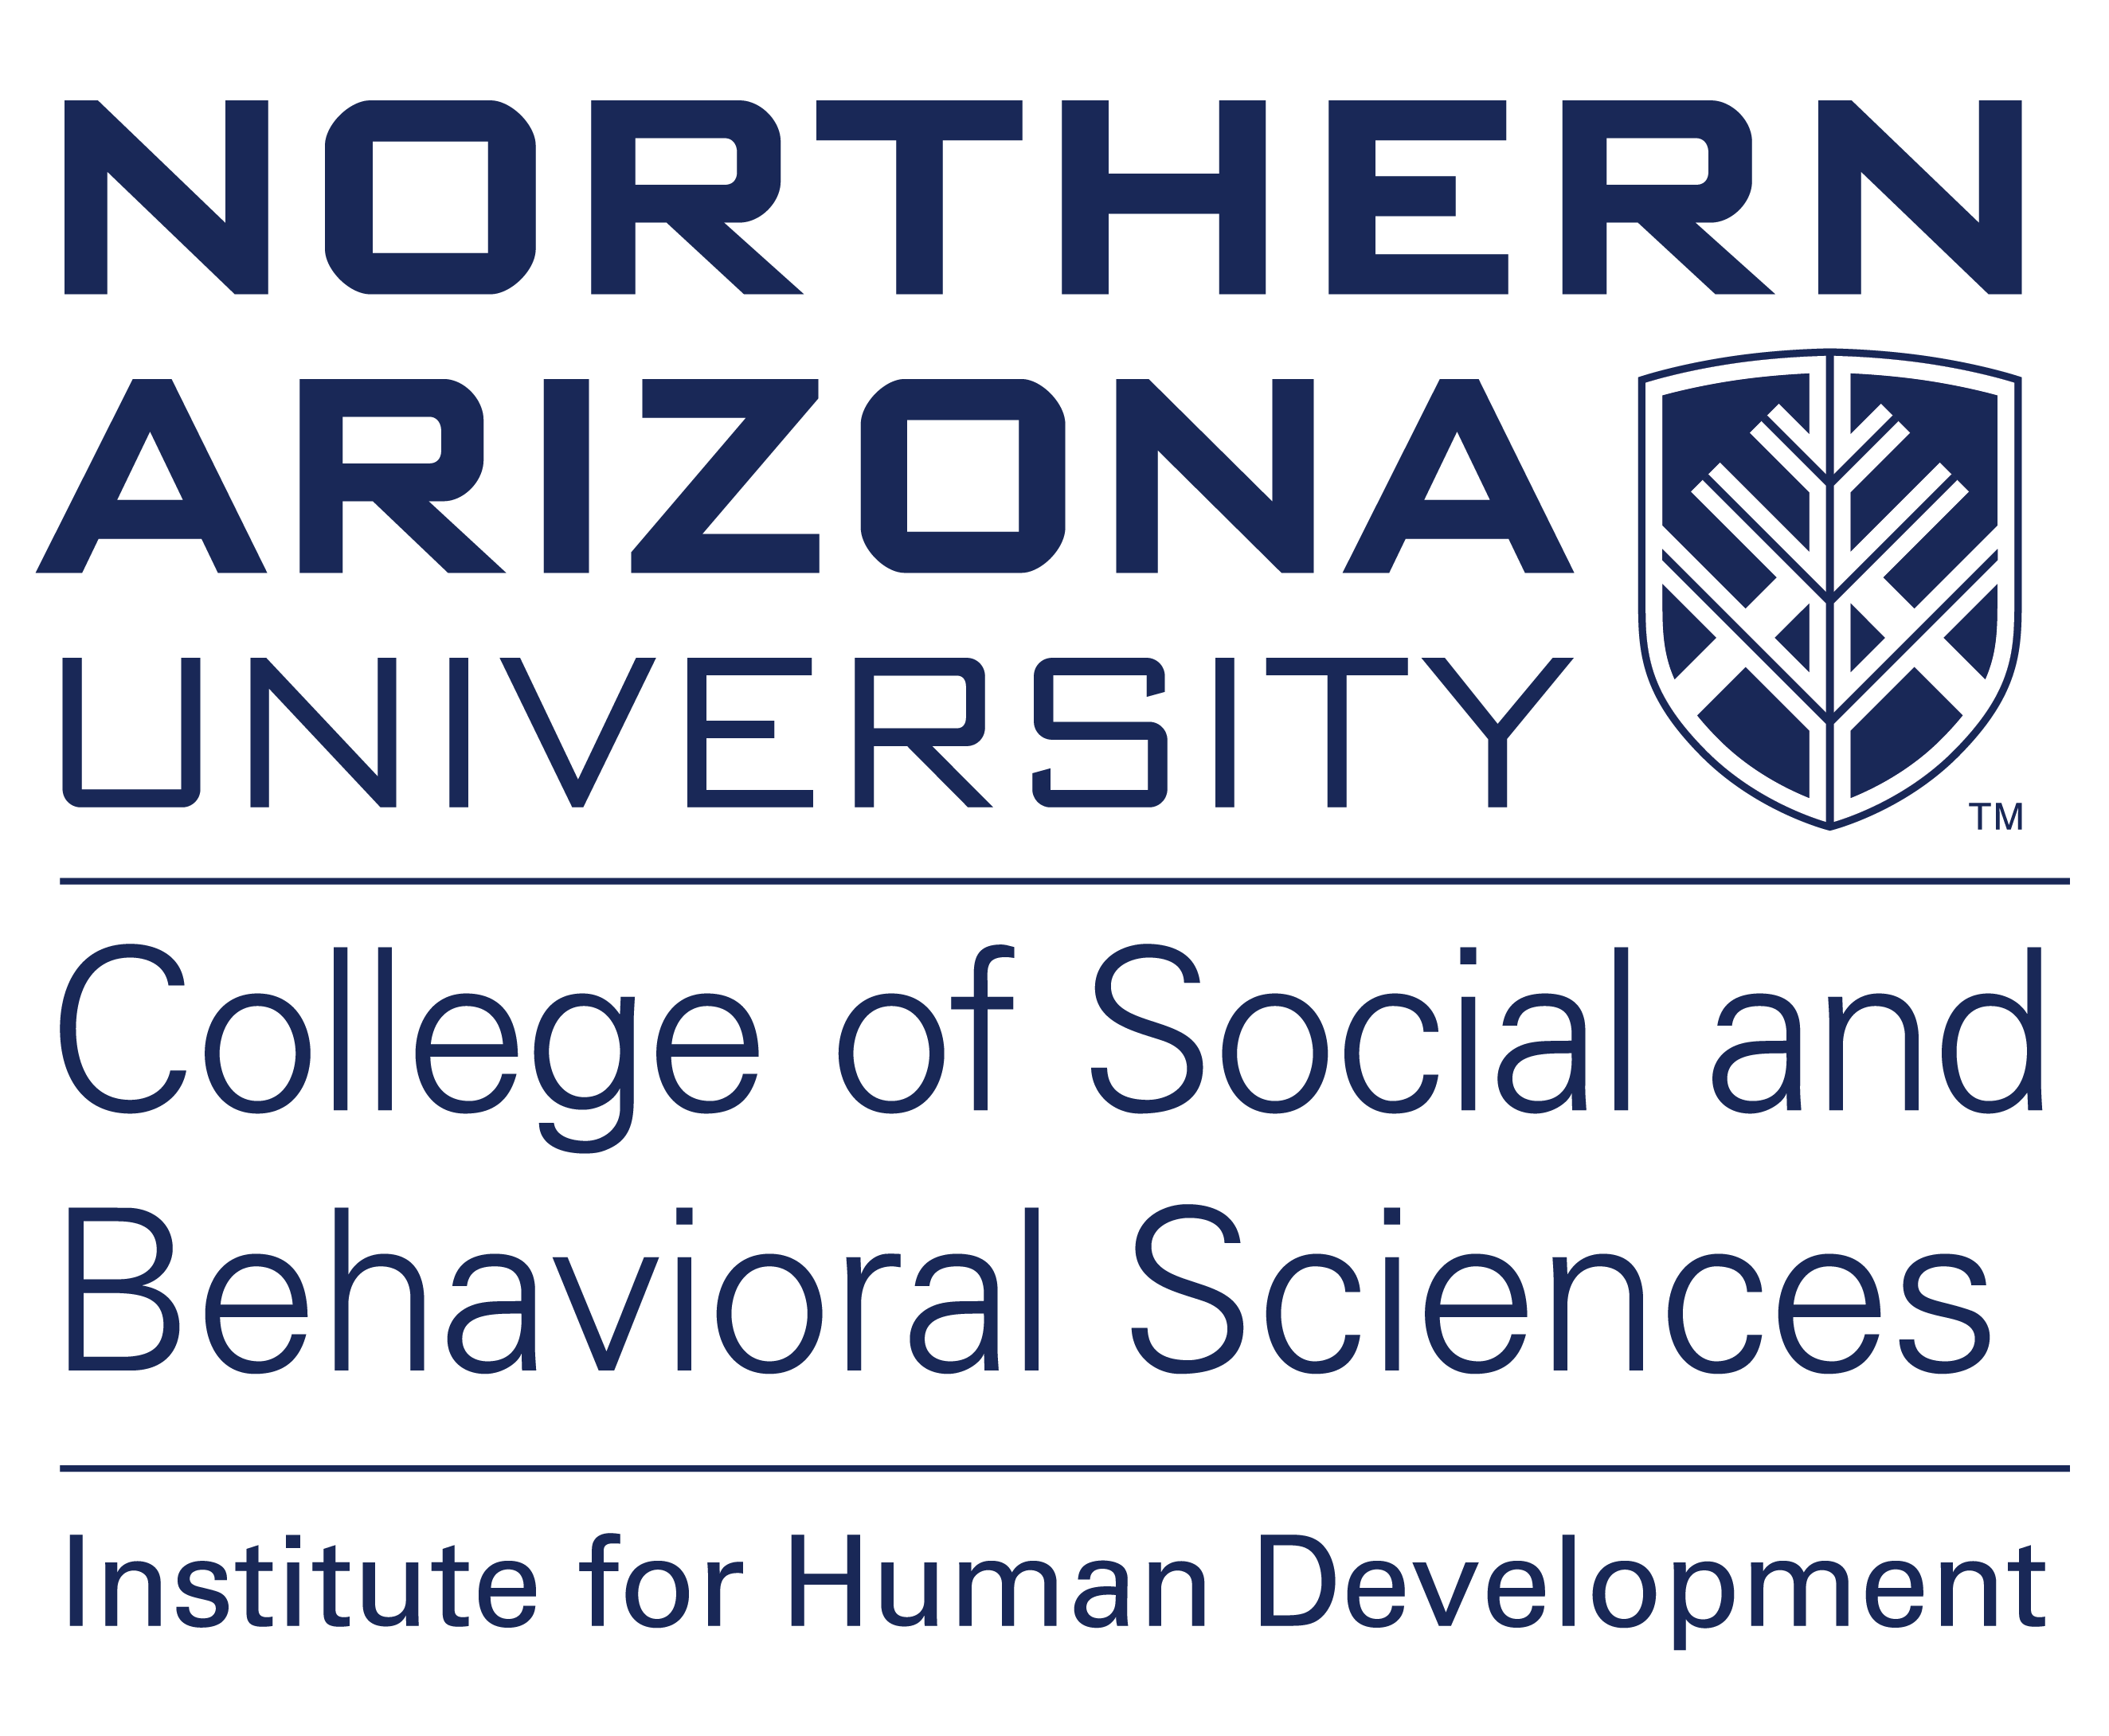 The Northern Arizona University logo that includes designations for the College of Social and Behavioral Studies and the Institute for Human Development.